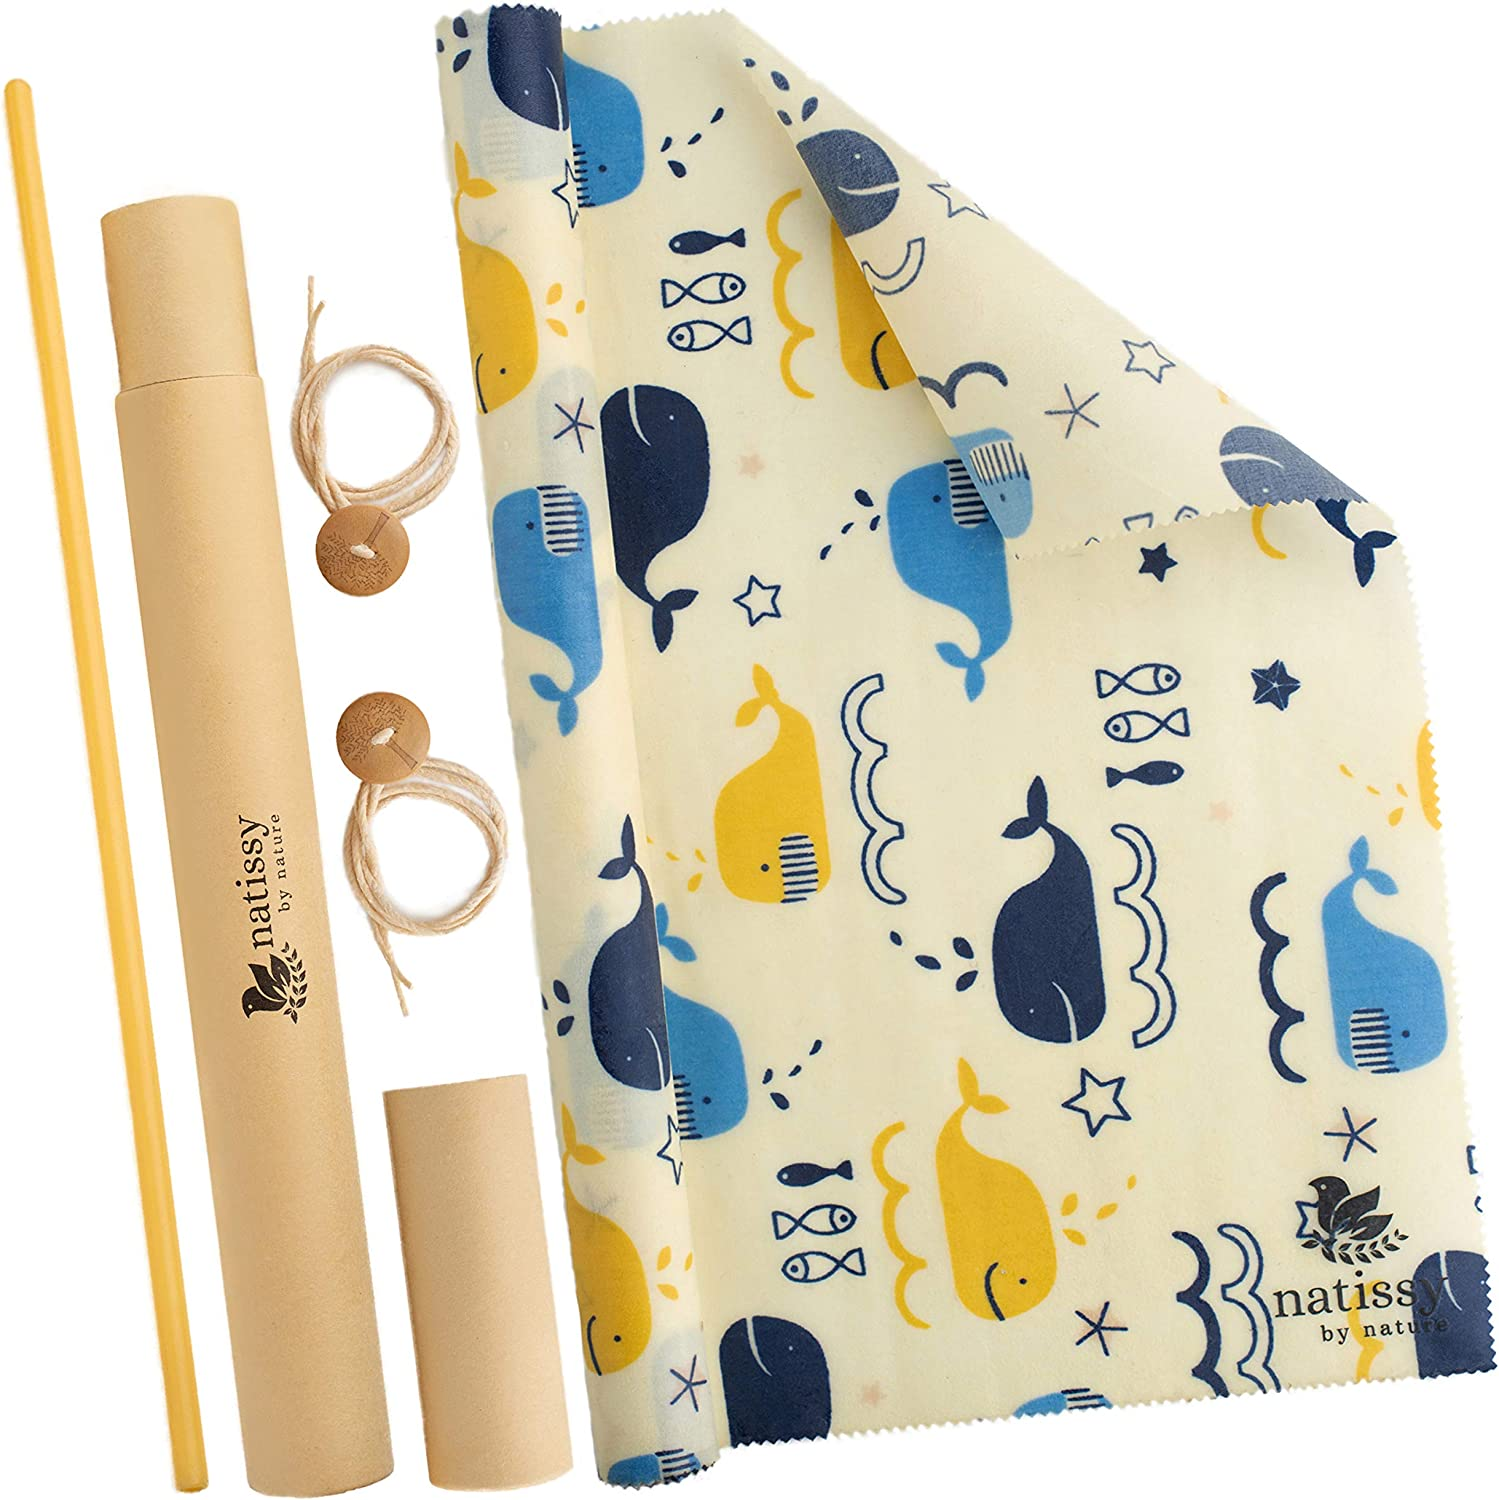 Reusable Beeswax Food Wrap, 39″ Roll of Organic Bees Wax Wrap for Bread, Cheese, Sandwich; Eco-Friendly Reusable Beeswax Wraps for Food & Covering Bowls; Sustainable Bees Wrap Reusable for Eco Kitchen